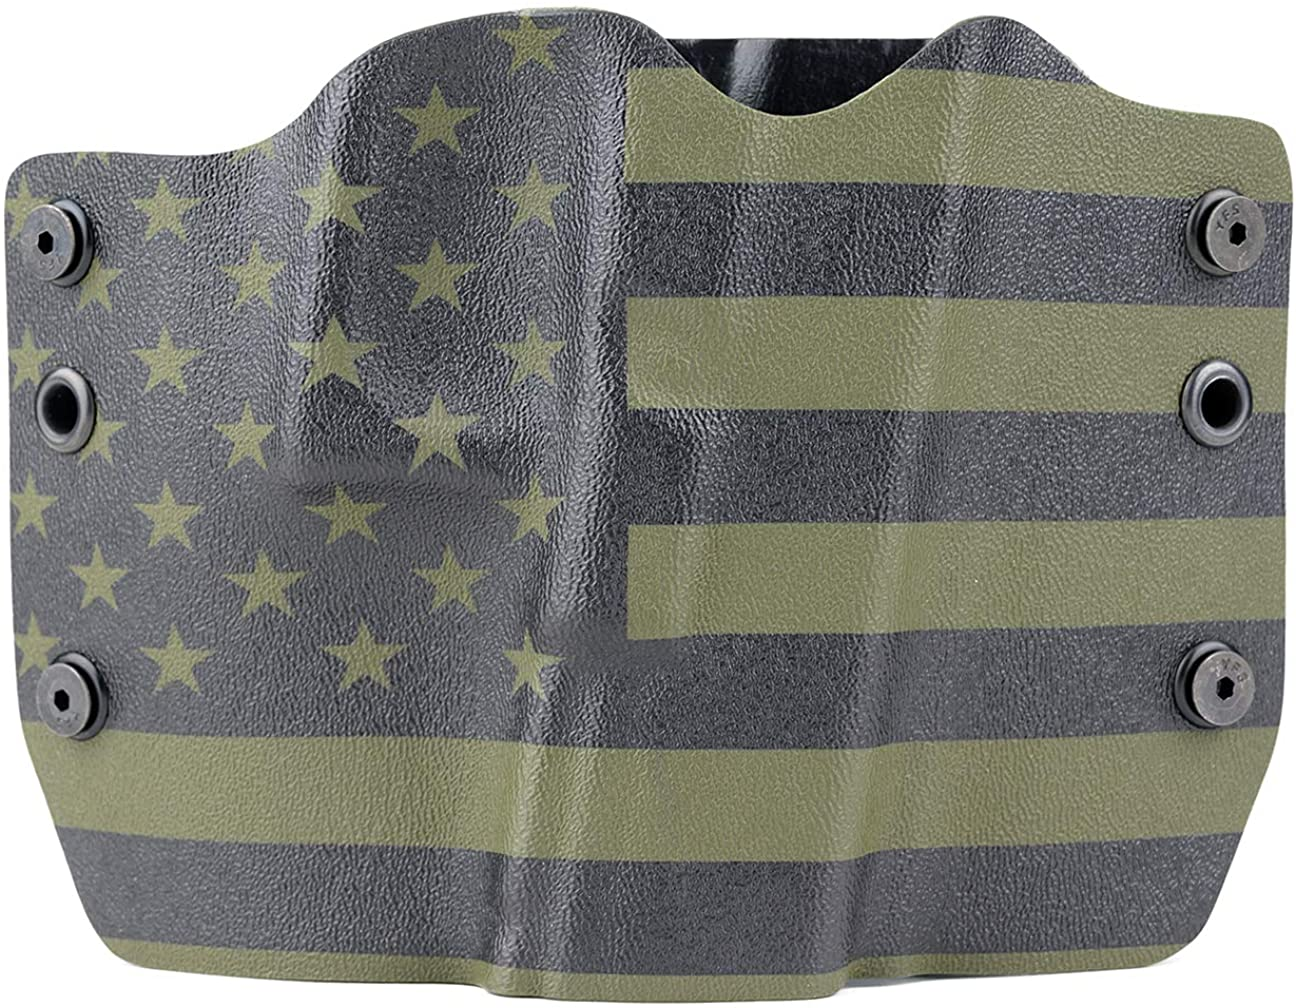 Green Black outlet USA Kydex OWB Holsters More Han Than 200 Large-scale sale Different